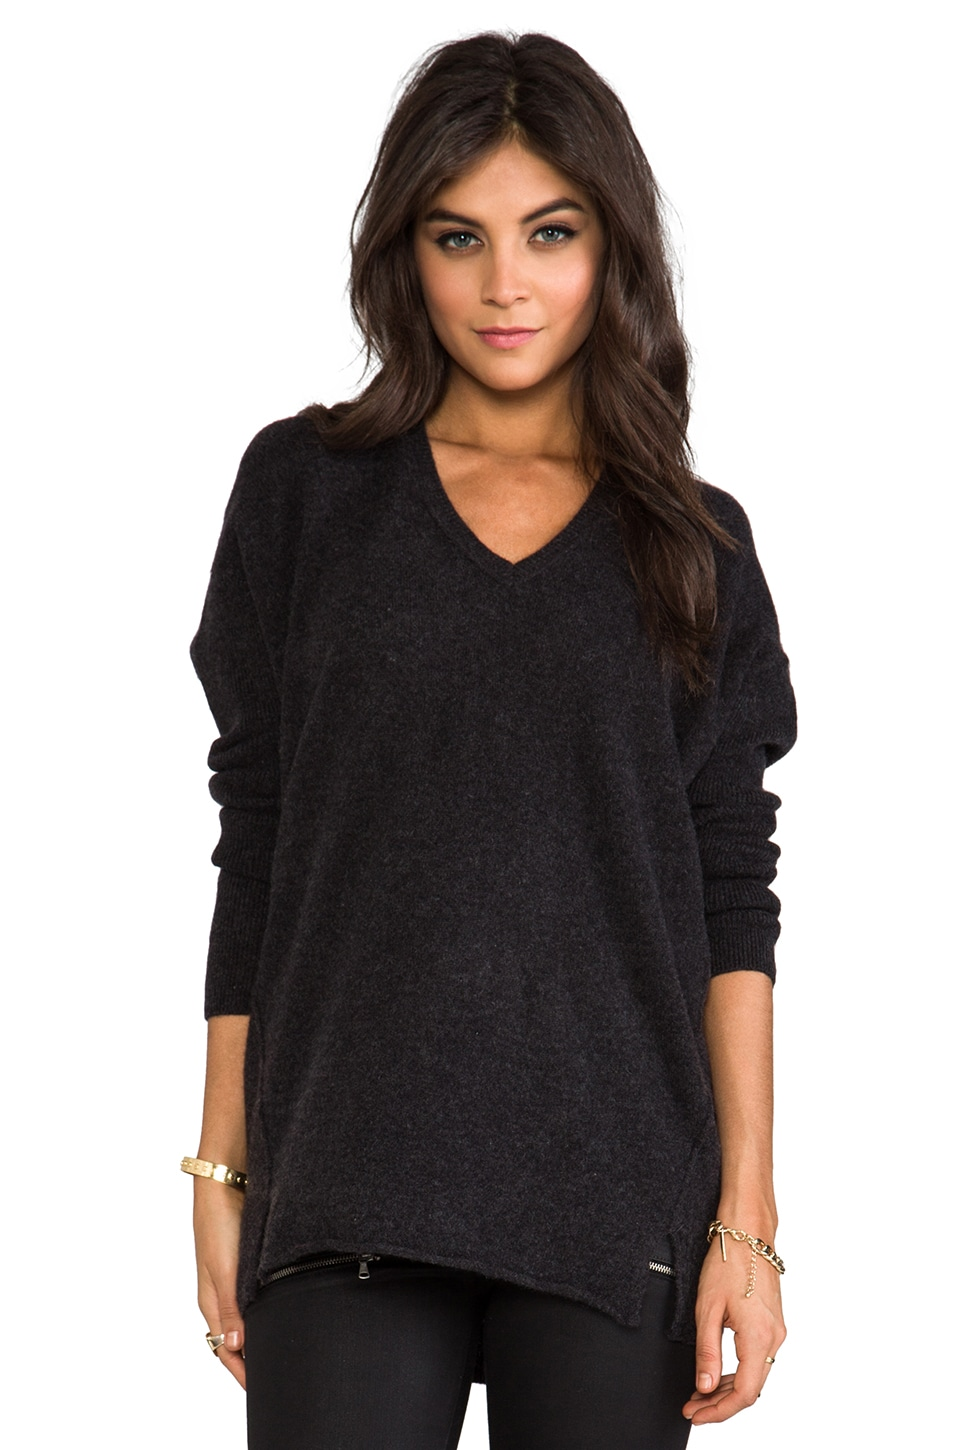 Velvet by Graham & Spencer Velvet Chrissa Cashmere Sweater in Charcoal